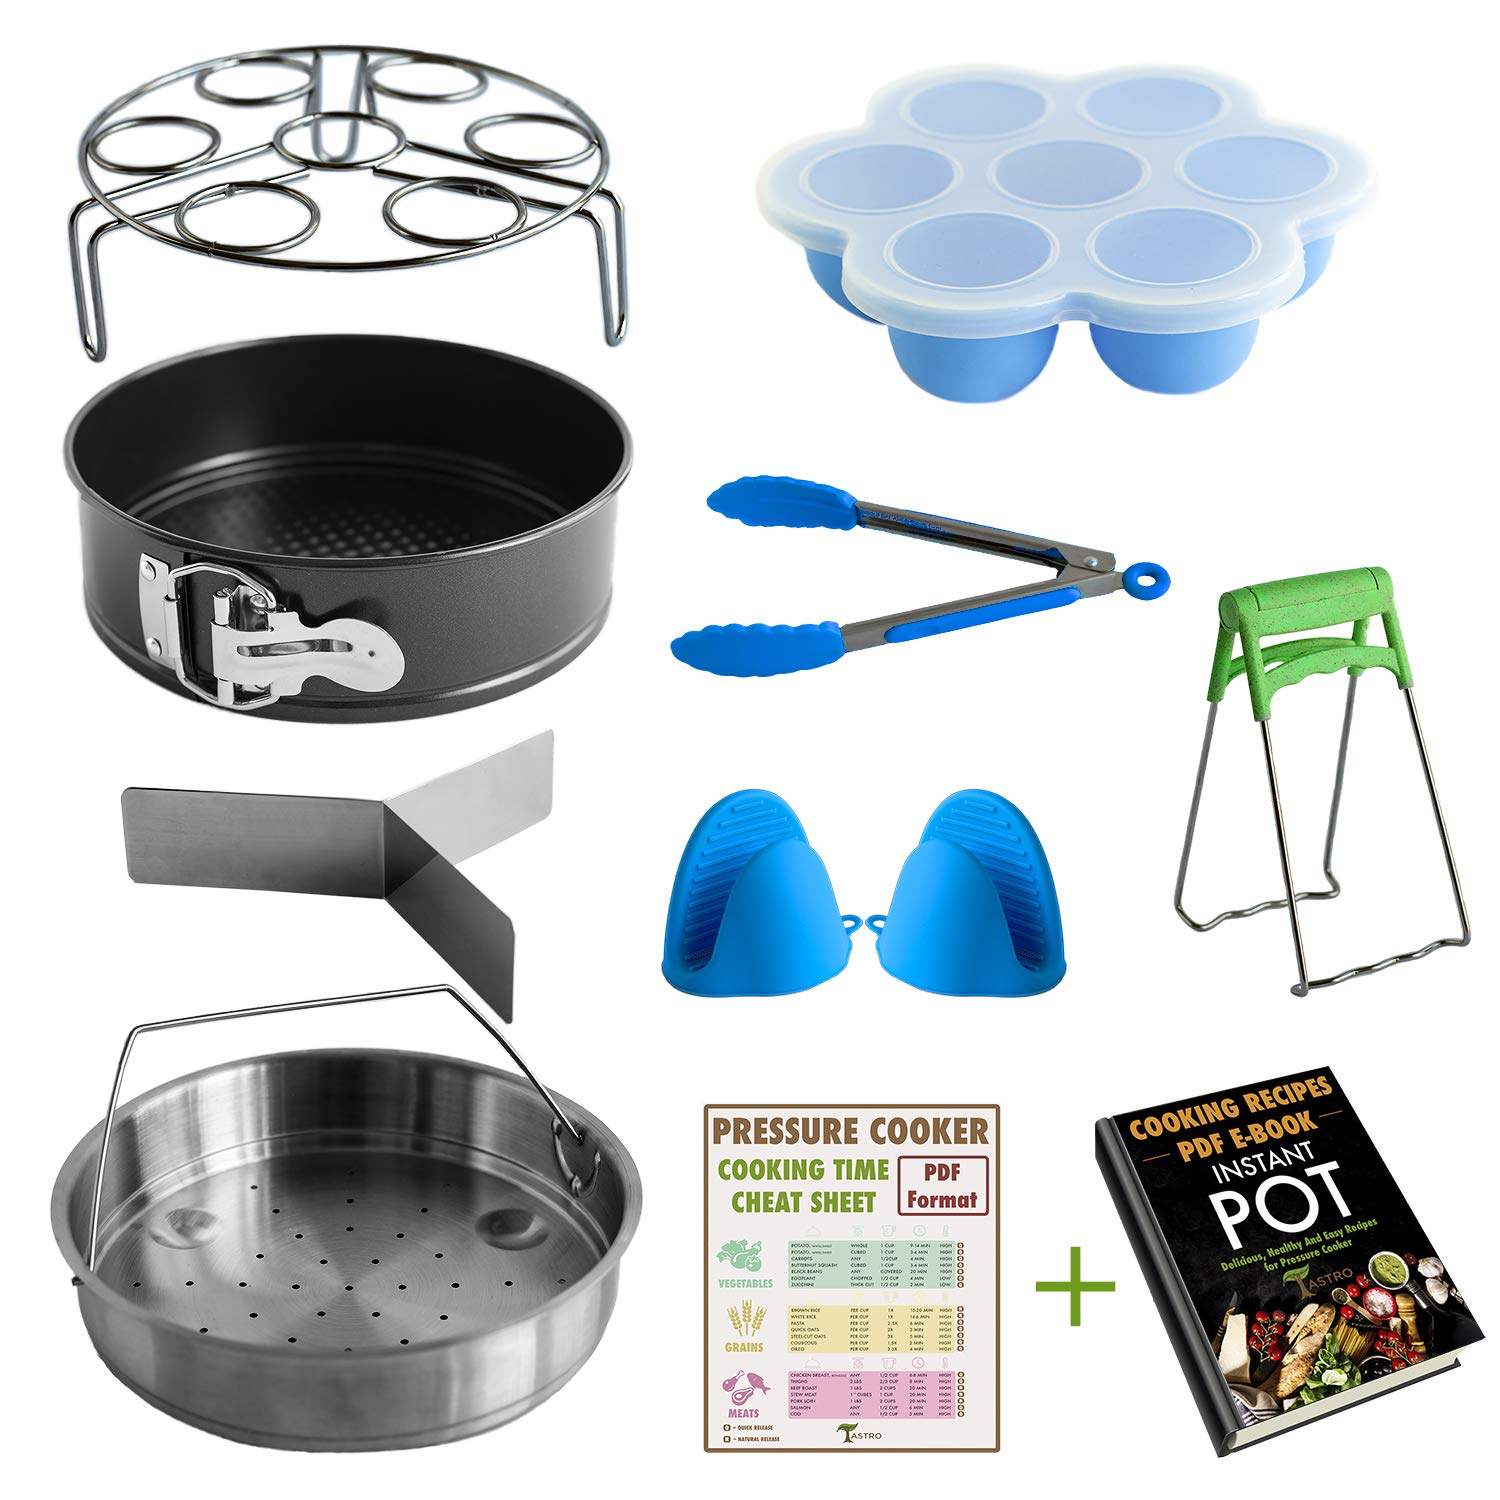 Pressure Cooker Accessories Set Compatible with Instant Pot 5,6,8 Qt with  Steamer Basket, 7 Springform Pan, Egg Steamer Rack, Egg Bites Mold, Oven